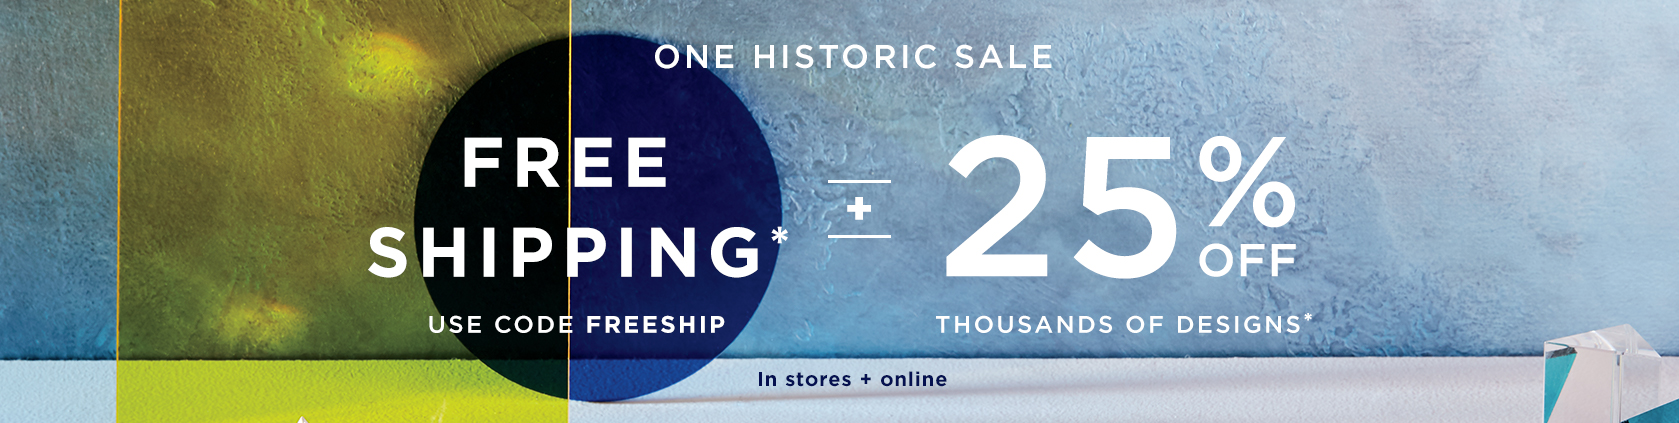 Free Shipping with code FREESHIP + 25% Off Thousands Of Designs